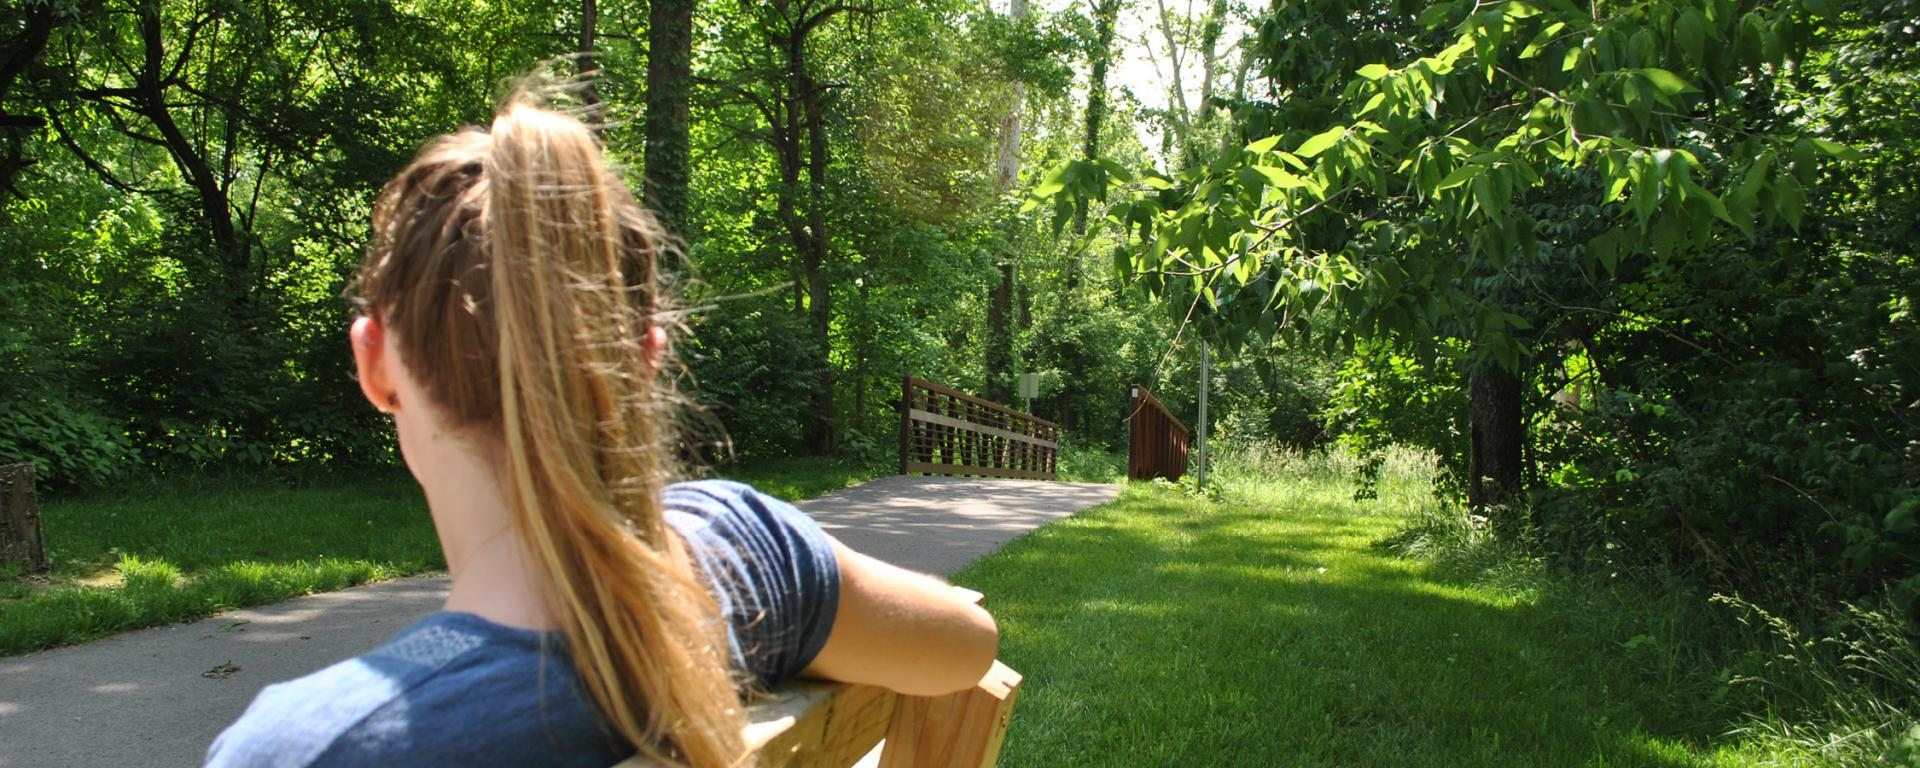 girl on bench by park trail